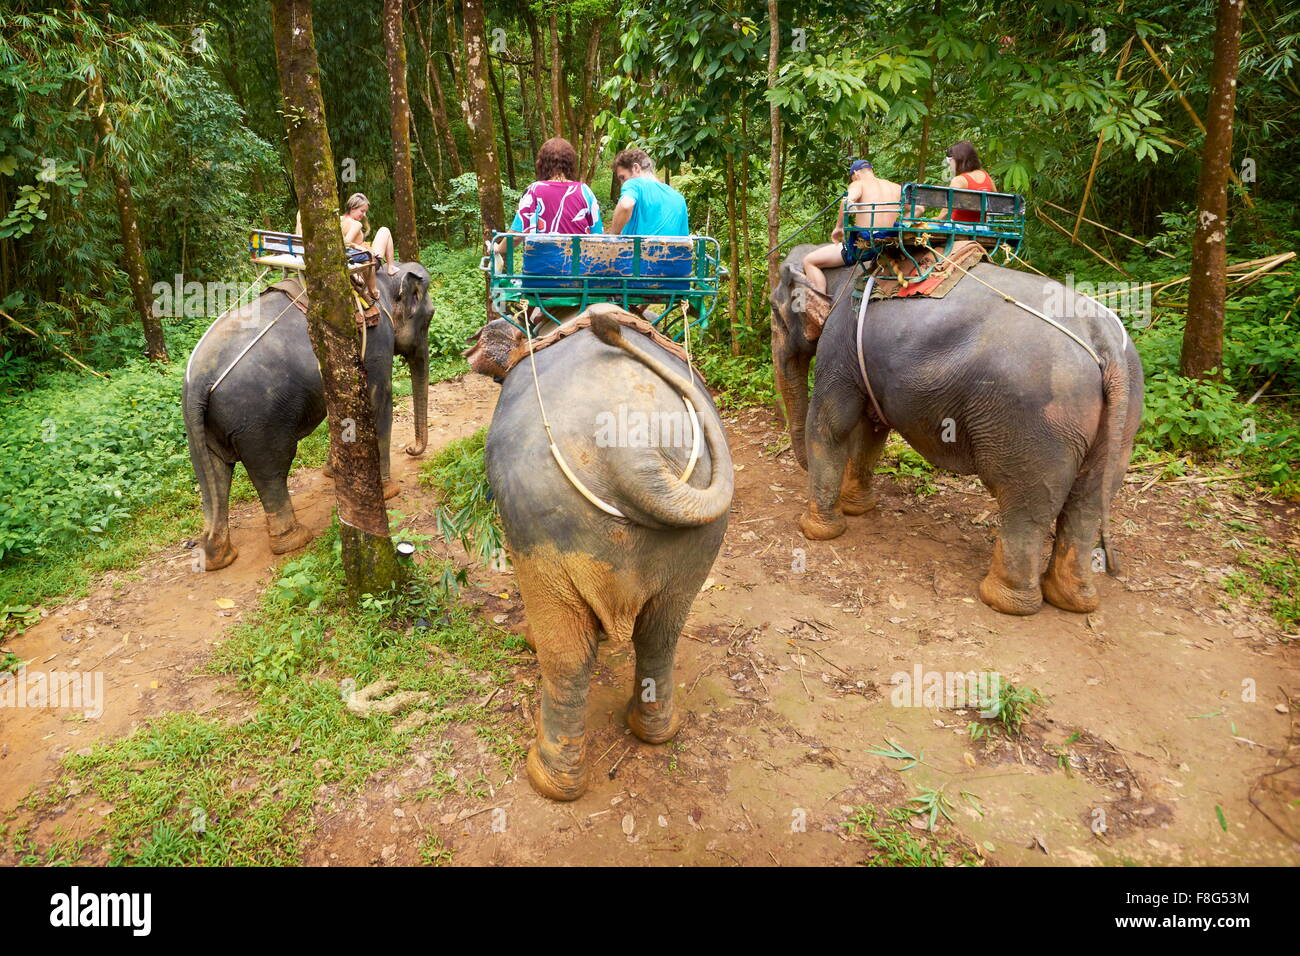 Thailand - elephant riding in tropical forest Stock Photo